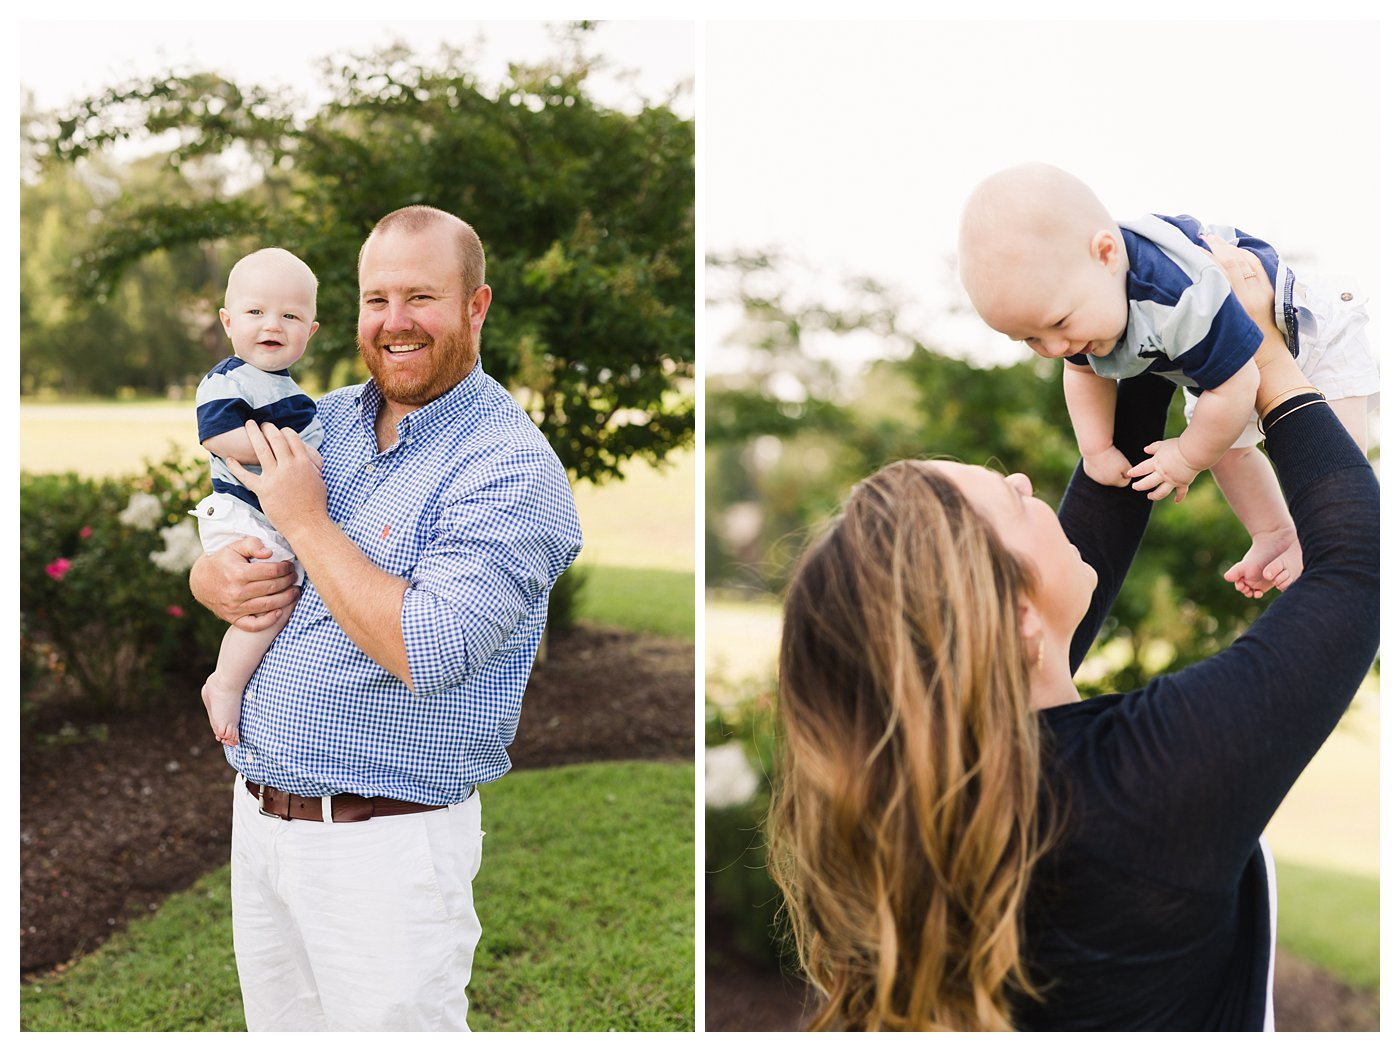 Greenville_NC_Family_Photography_ 6_Month_Session_0009.jpg